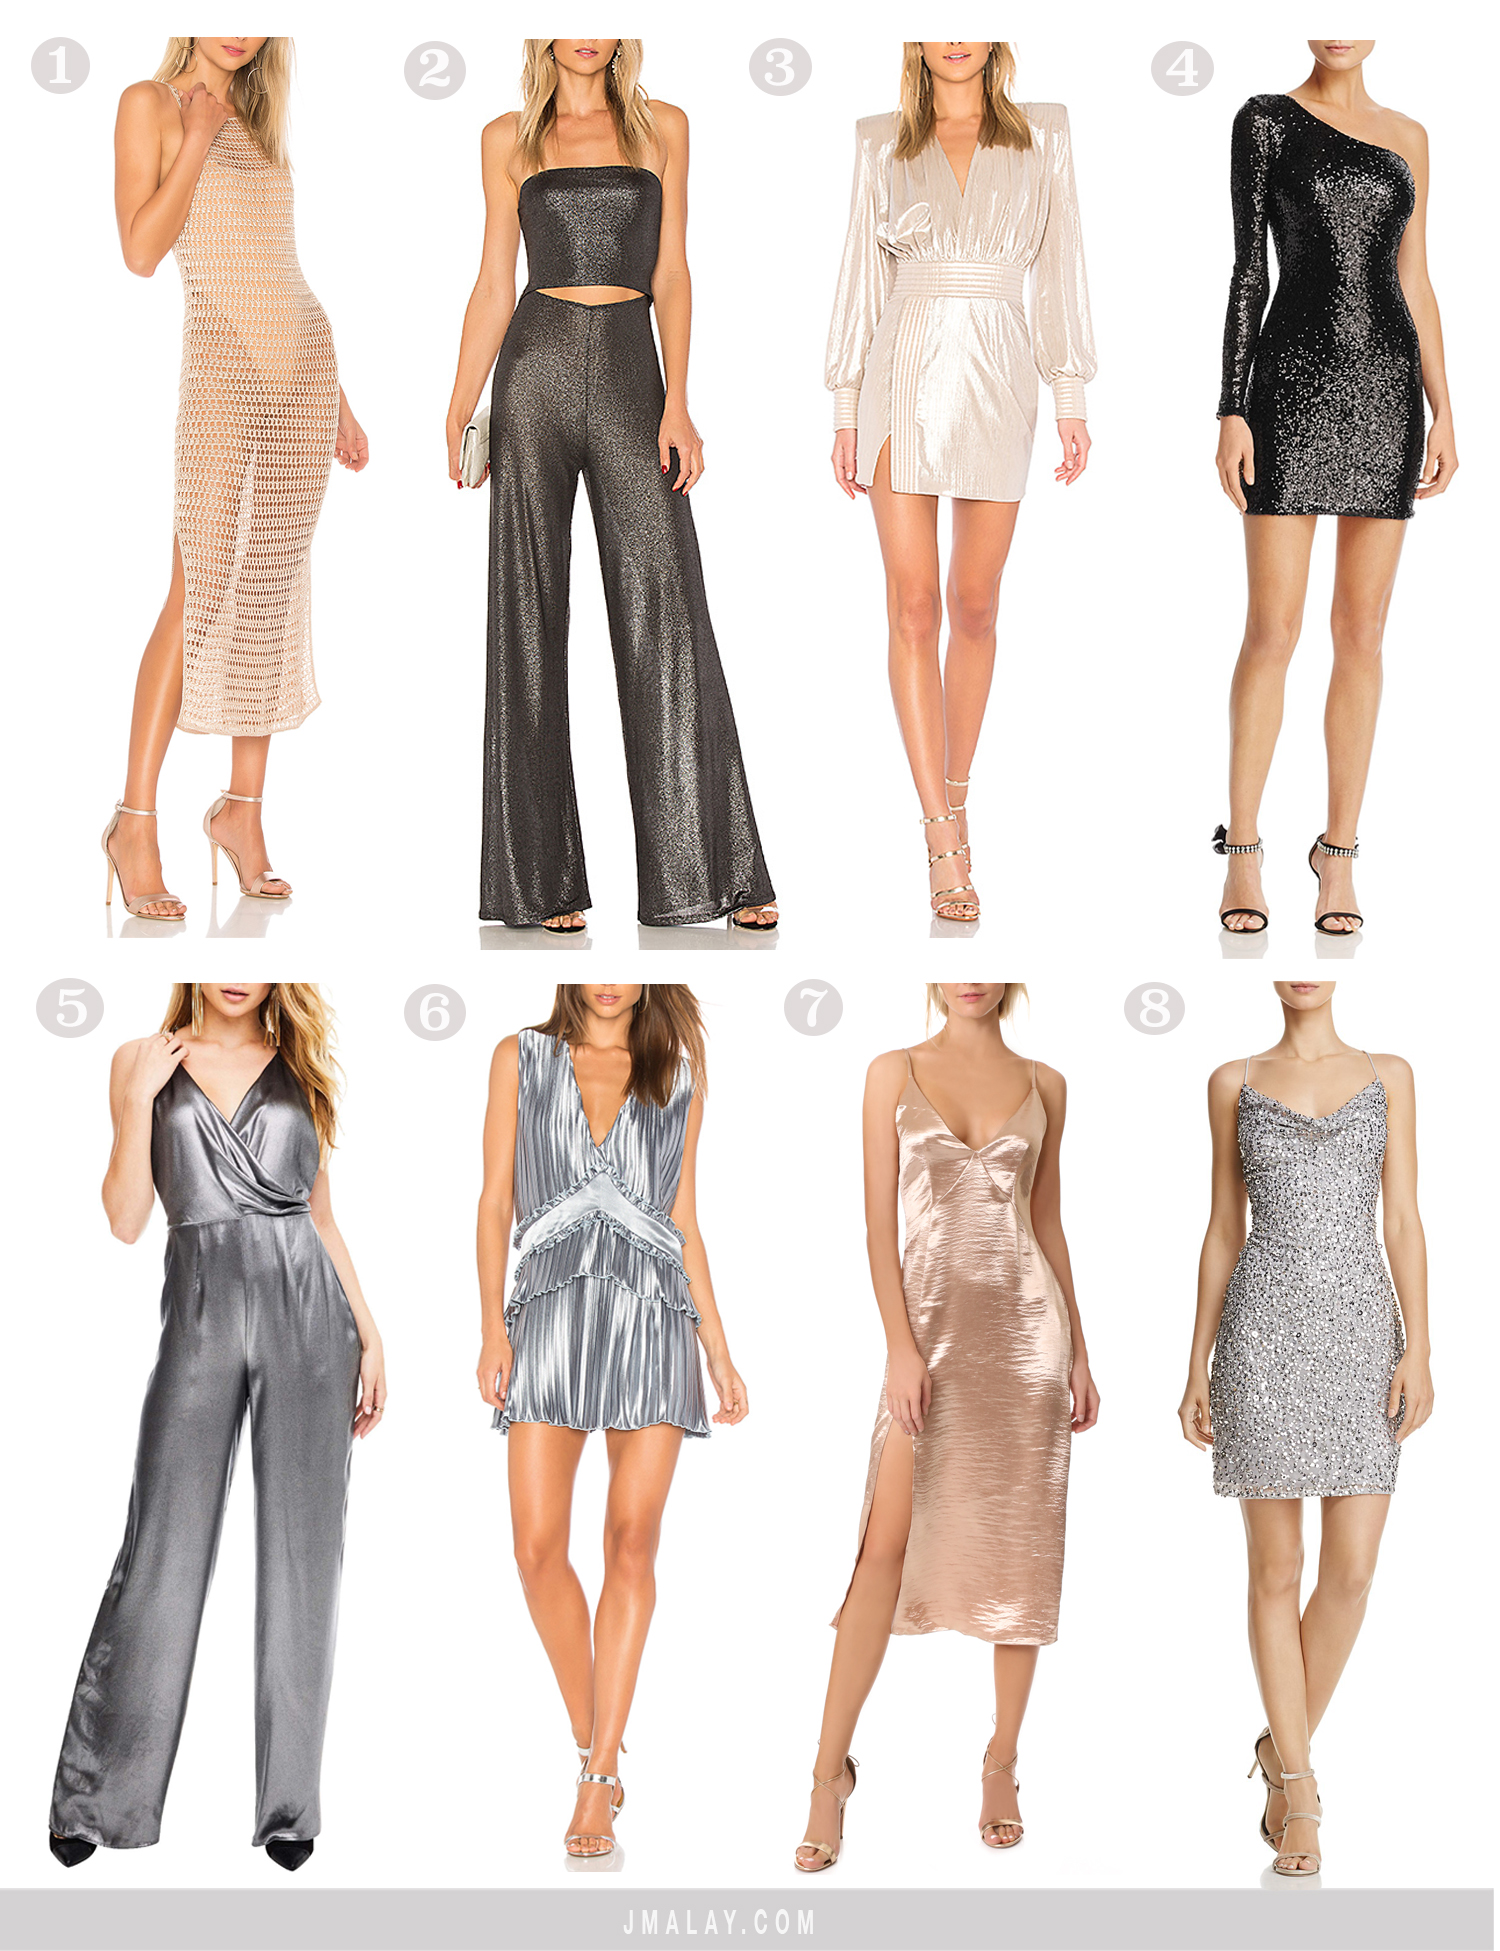 New Years Eve Party Dresses Outfit Inspo